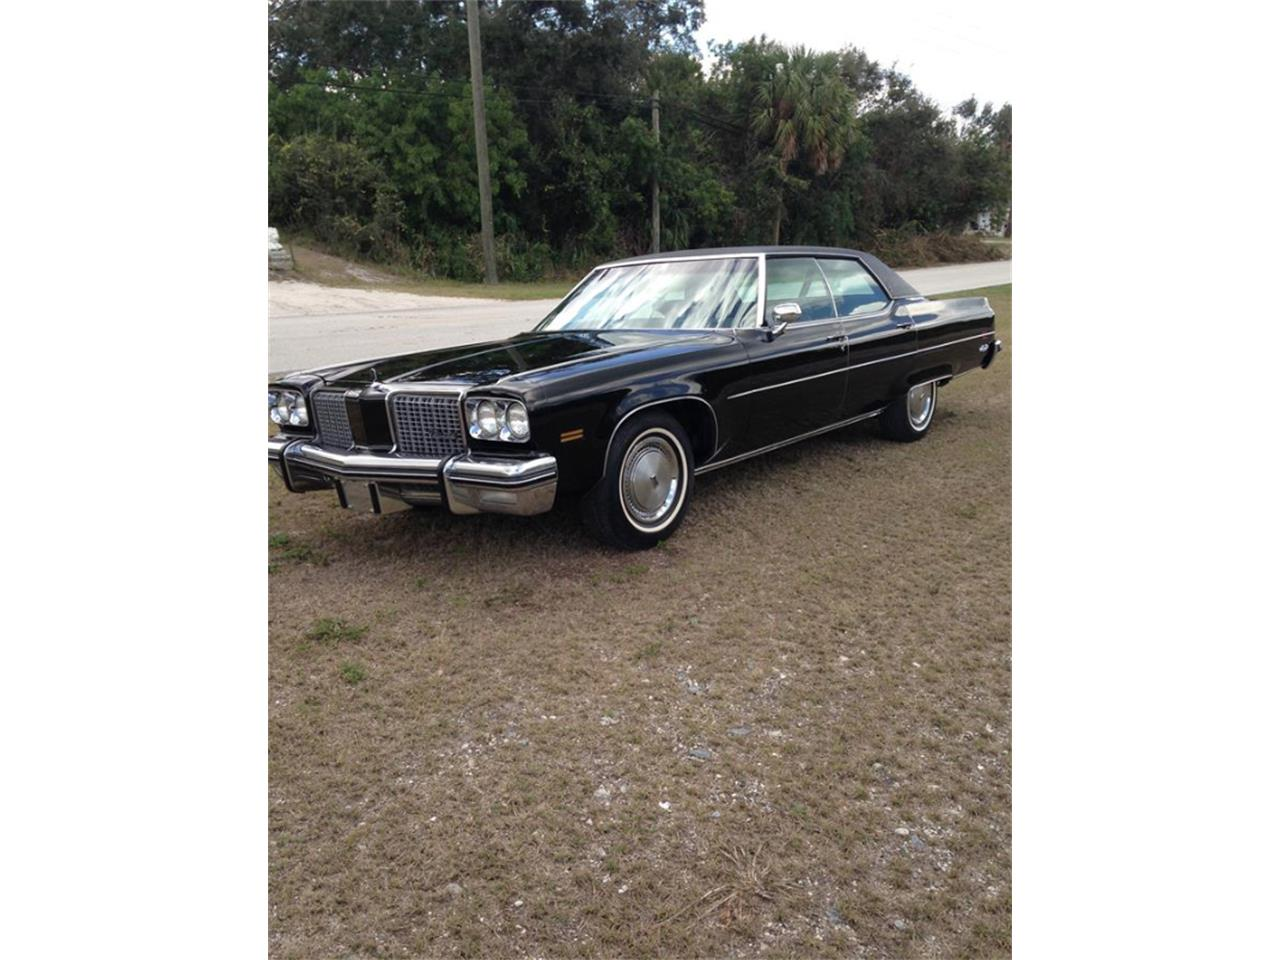 Large Picture of '74 Oldsmobile 98 Regency located in Florida - $19,800.00 Offered by a Private Seller - NOQB